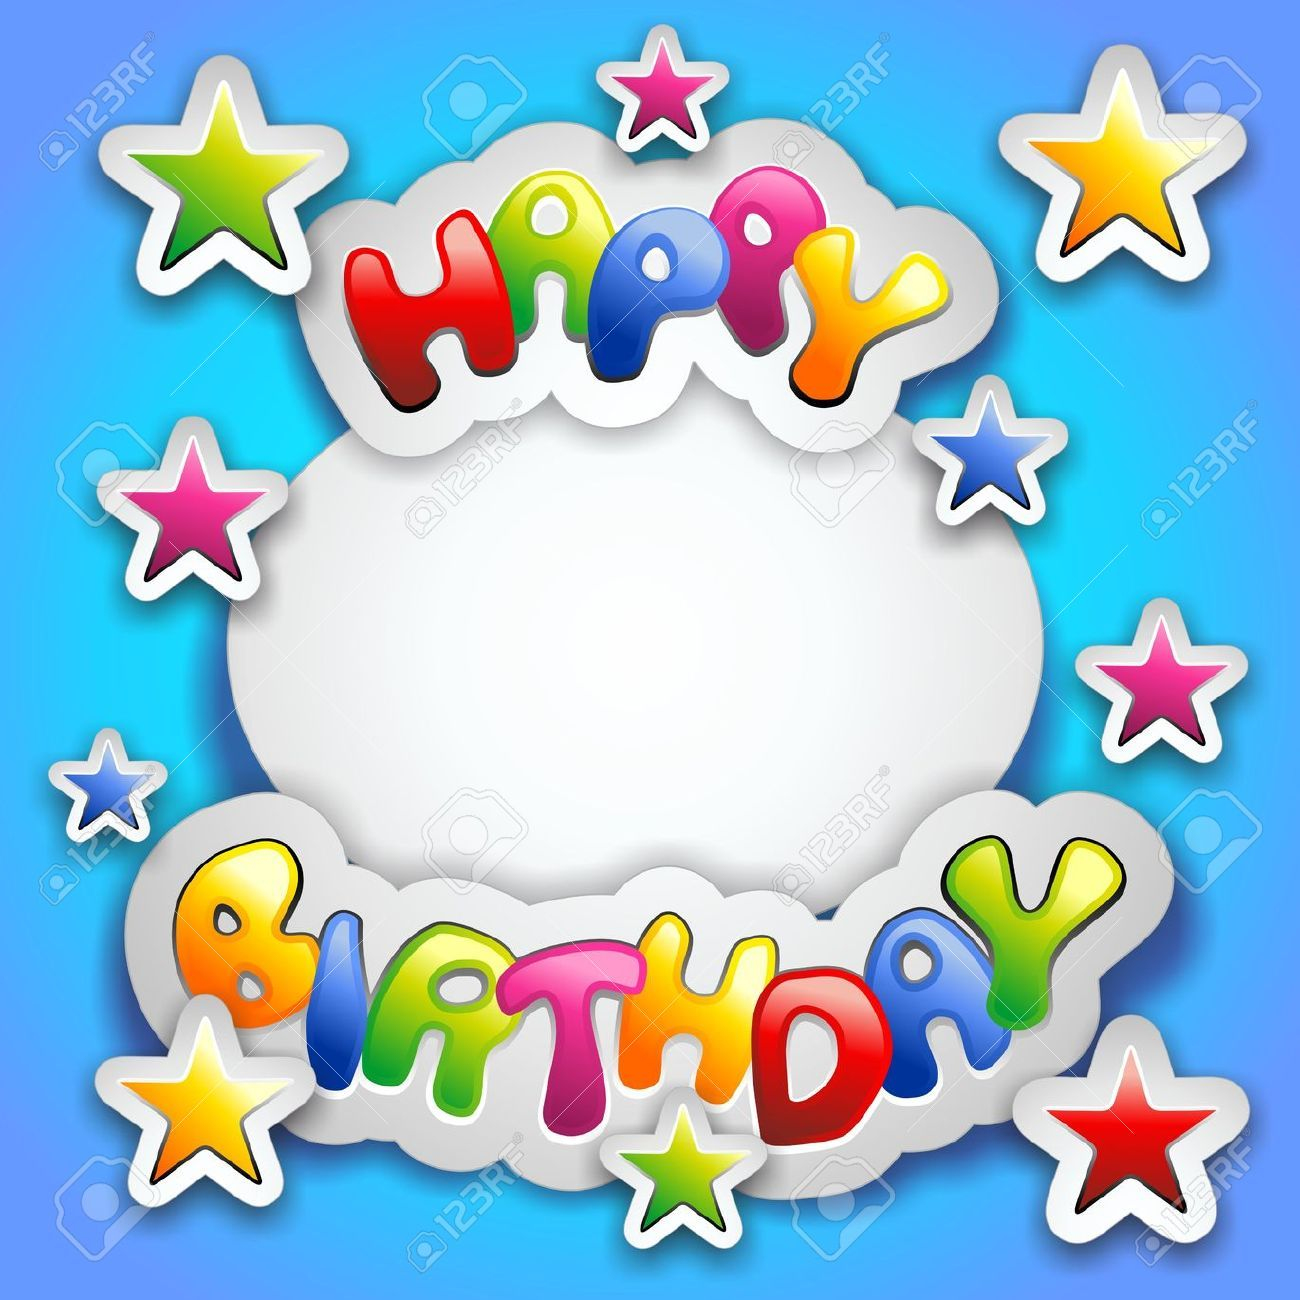 Happy Birthday Party Colorful Stickers Card.